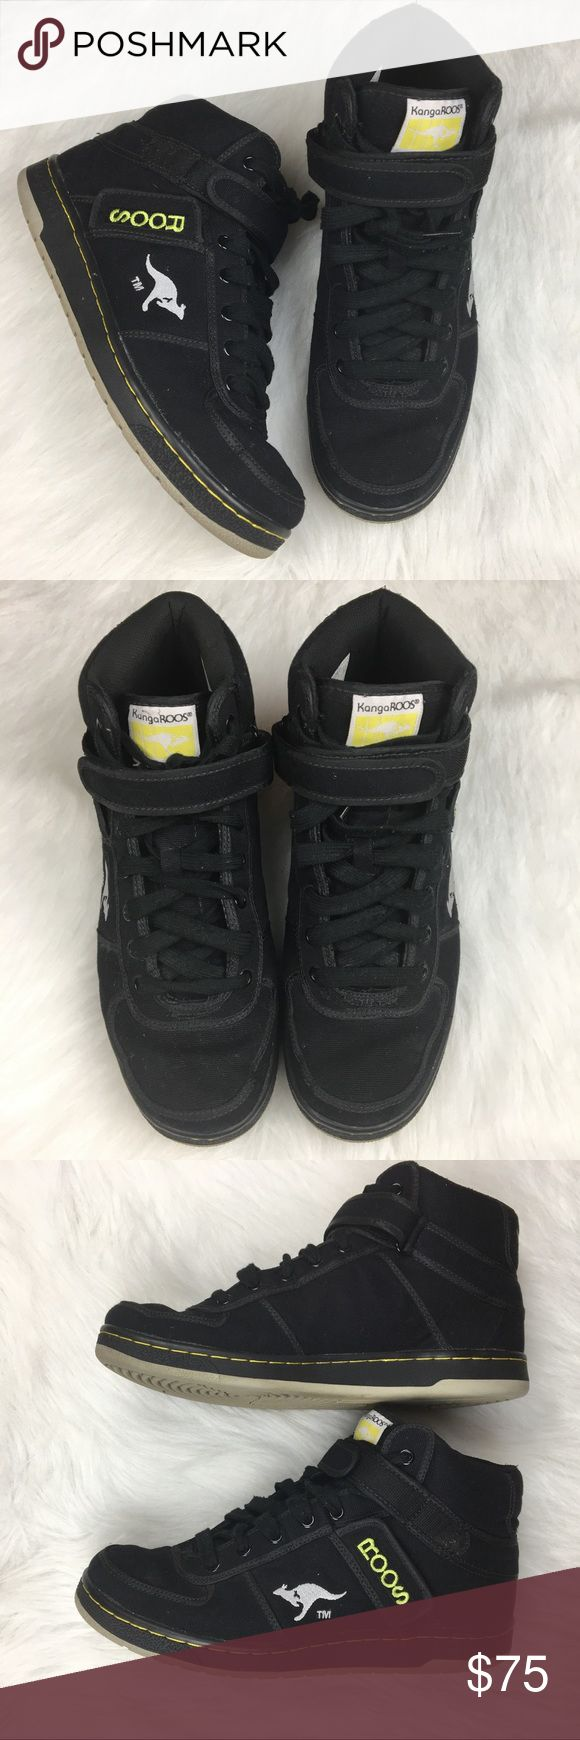 Kangaroos | men's Skywalker sneakers Rare/hard to find KangaROOS men's Skywalker sneakers. Very well made shoes with padded tongue and heel, Velcro loop closure, & well-made soles. Have small side pockets! Excellent condition. Kangaroos Shoes Sneakers